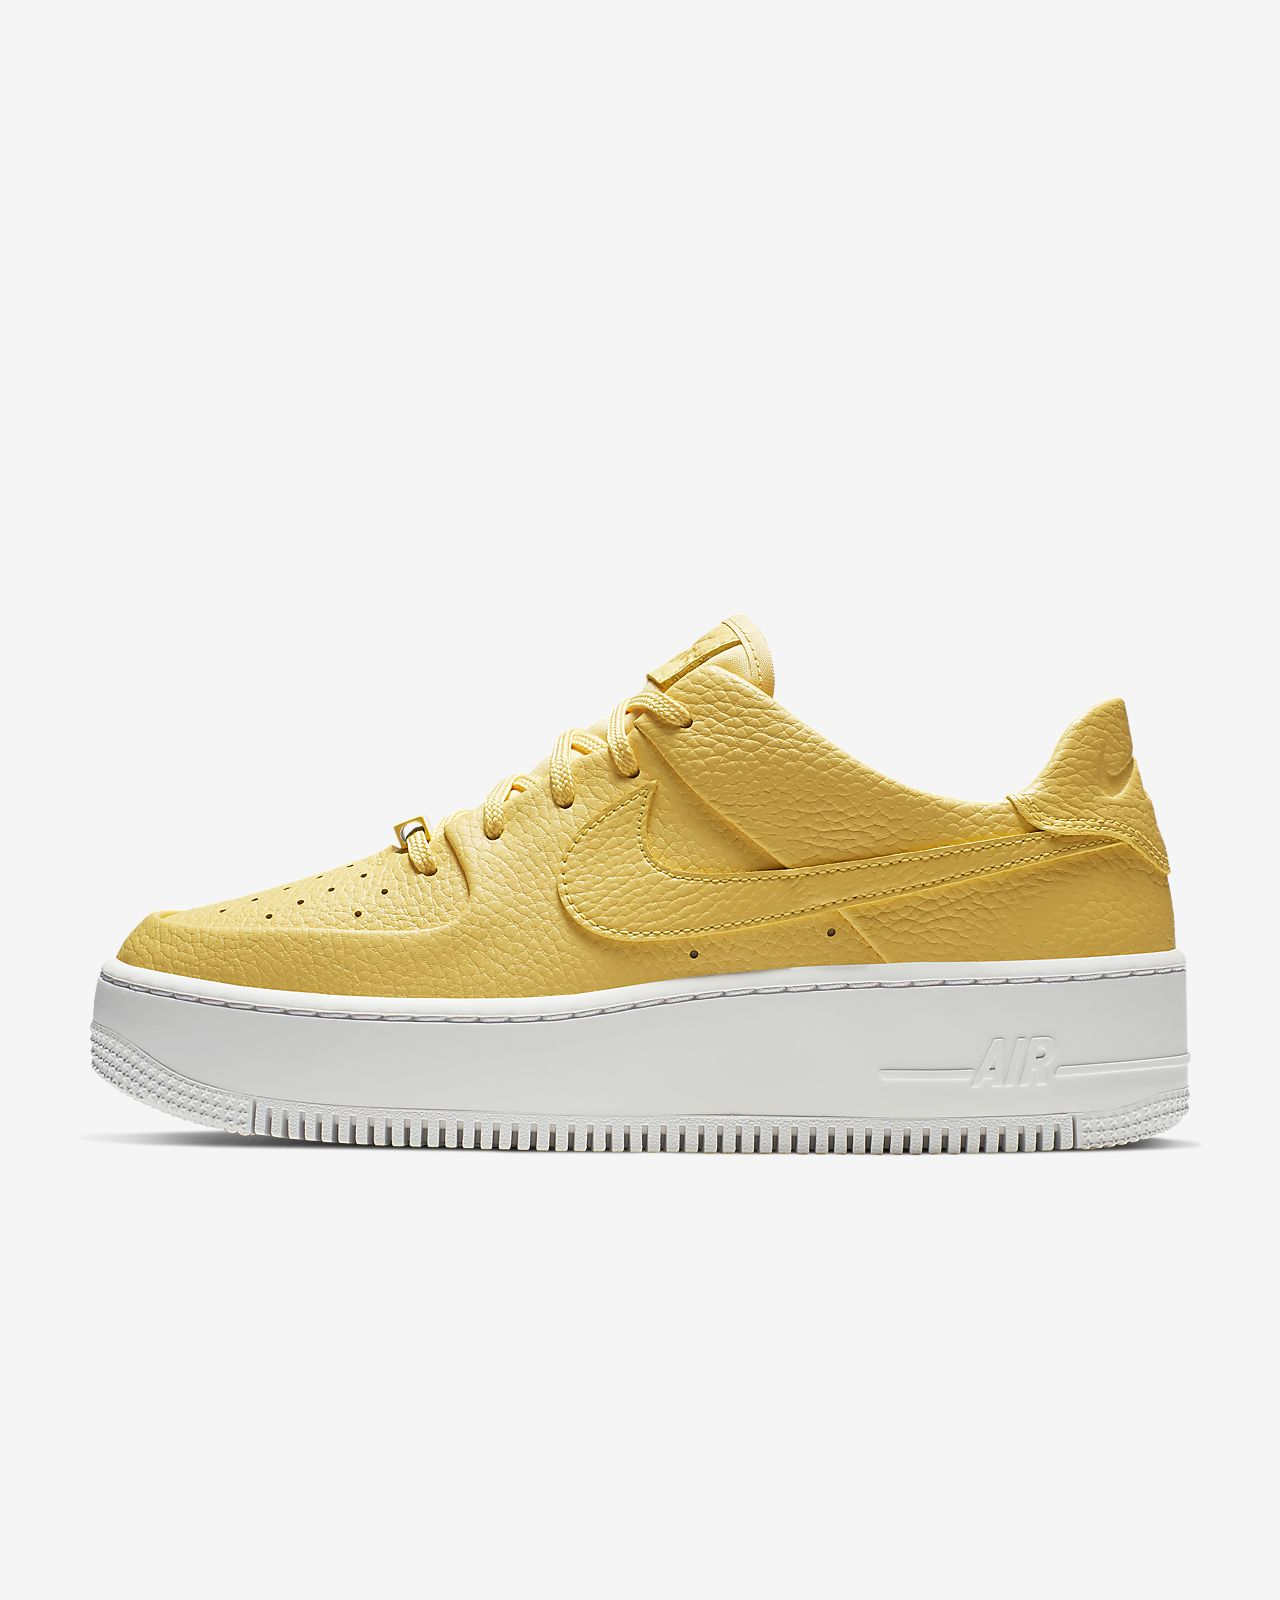 buy online dfa58 ff26d Nike Air Force 1 Sage Low Women's Shoe. Nike.com